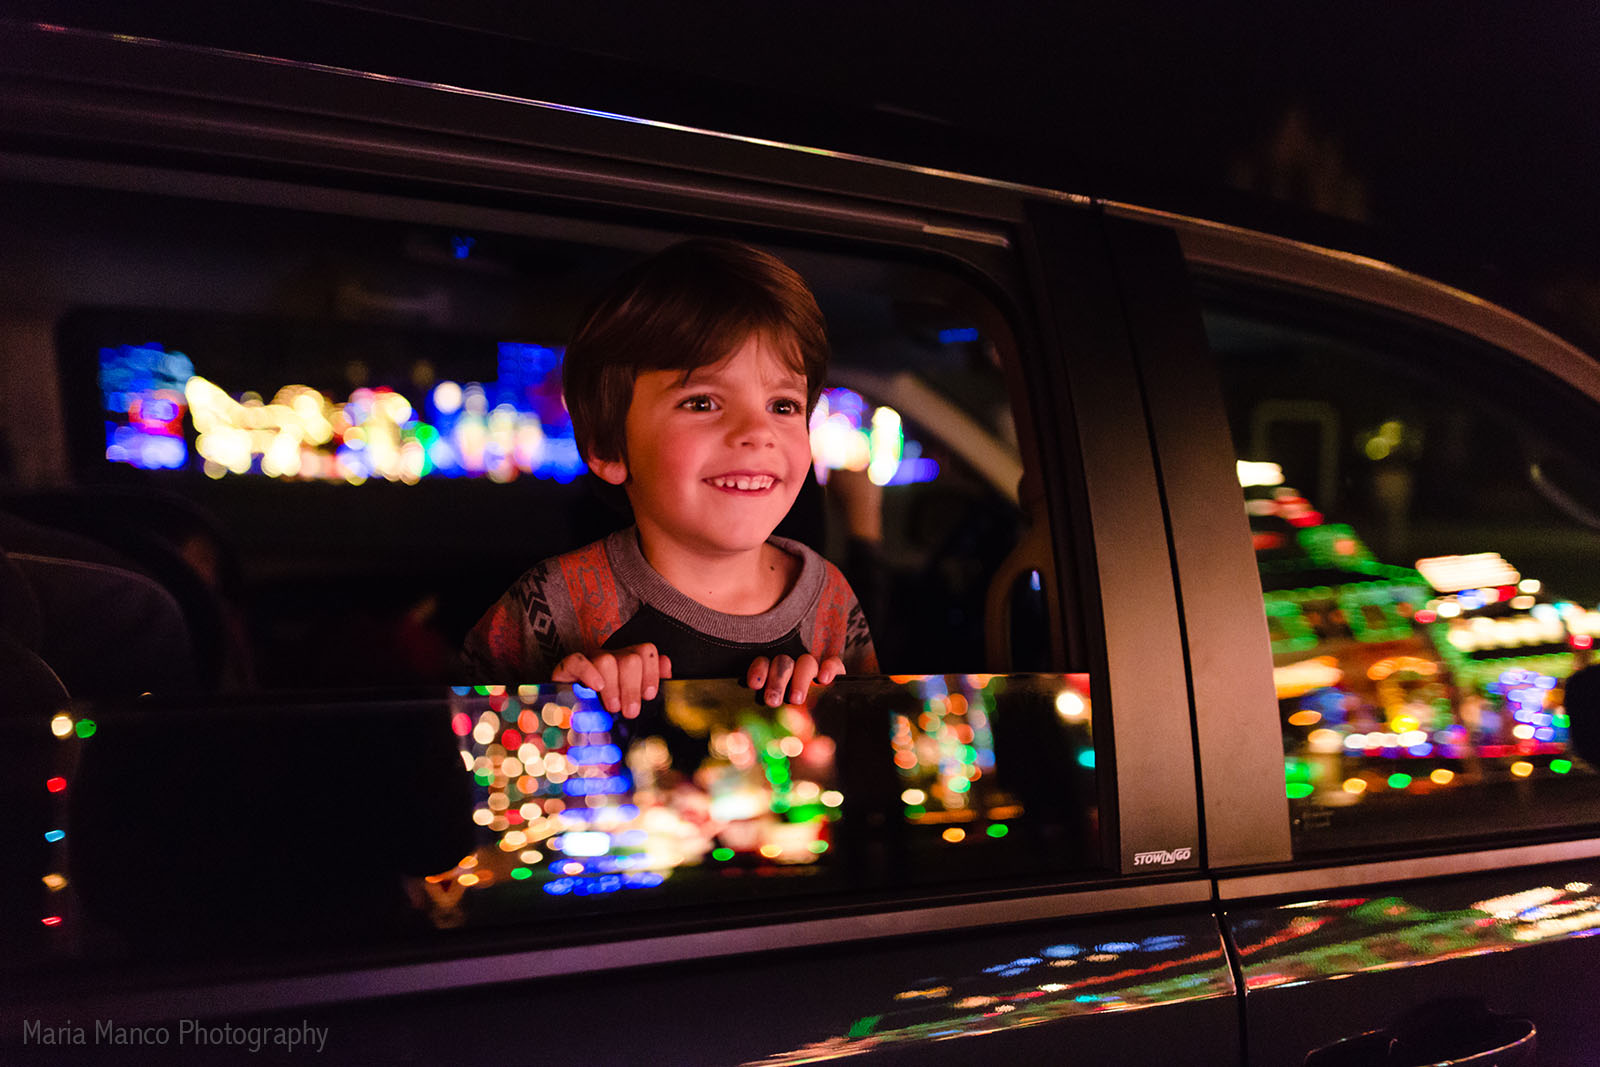 pic of kid looking at Christmas lights outside by Maria Manco